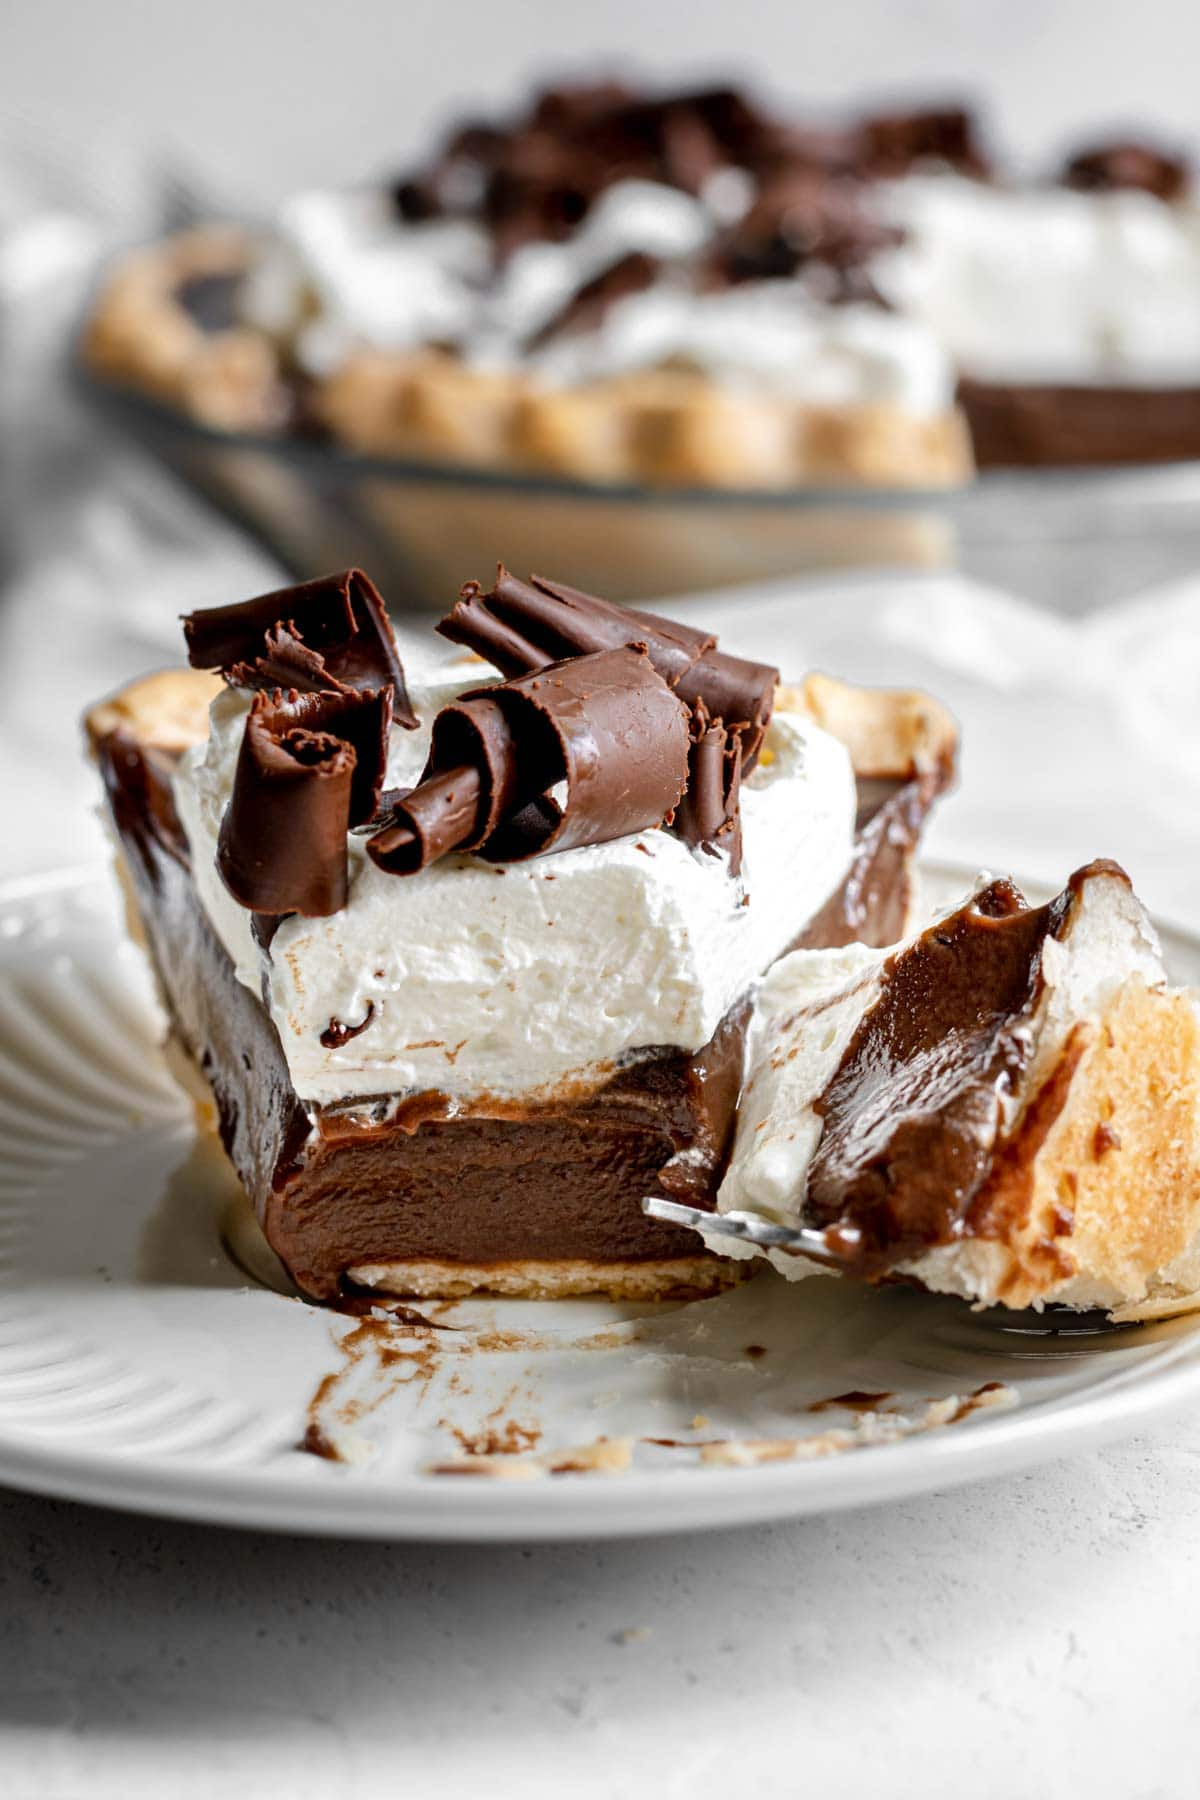 Chocolate Cream Pie with whipped cream and chocolate shavings on serving plate with fork